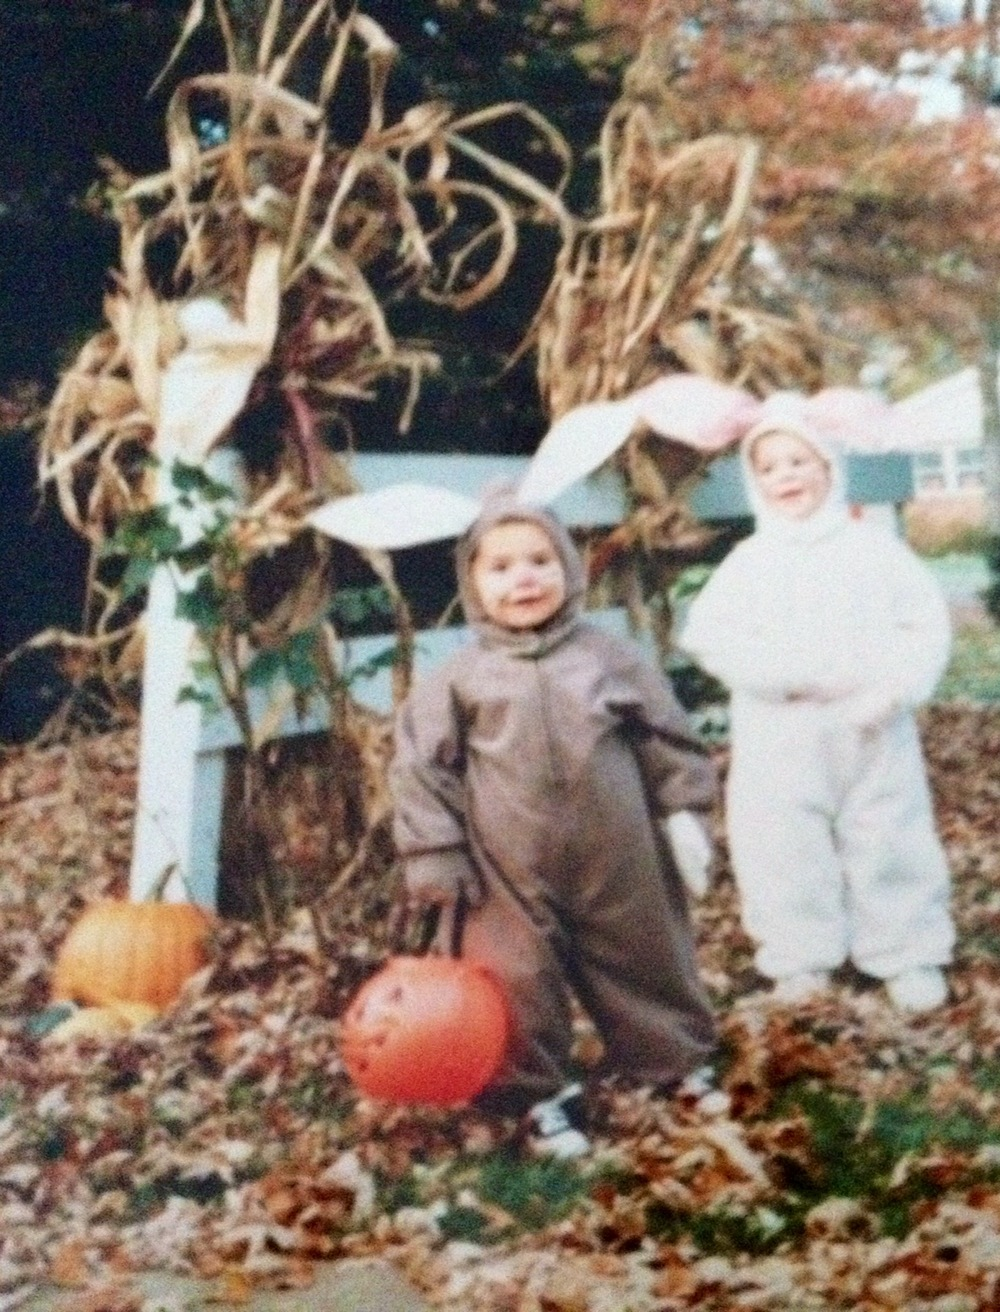 """We had the best costumes growing up for halloween; they were full-on, crazy turtle costumes, bunny rabbits, cat onesies made from scratch,"""